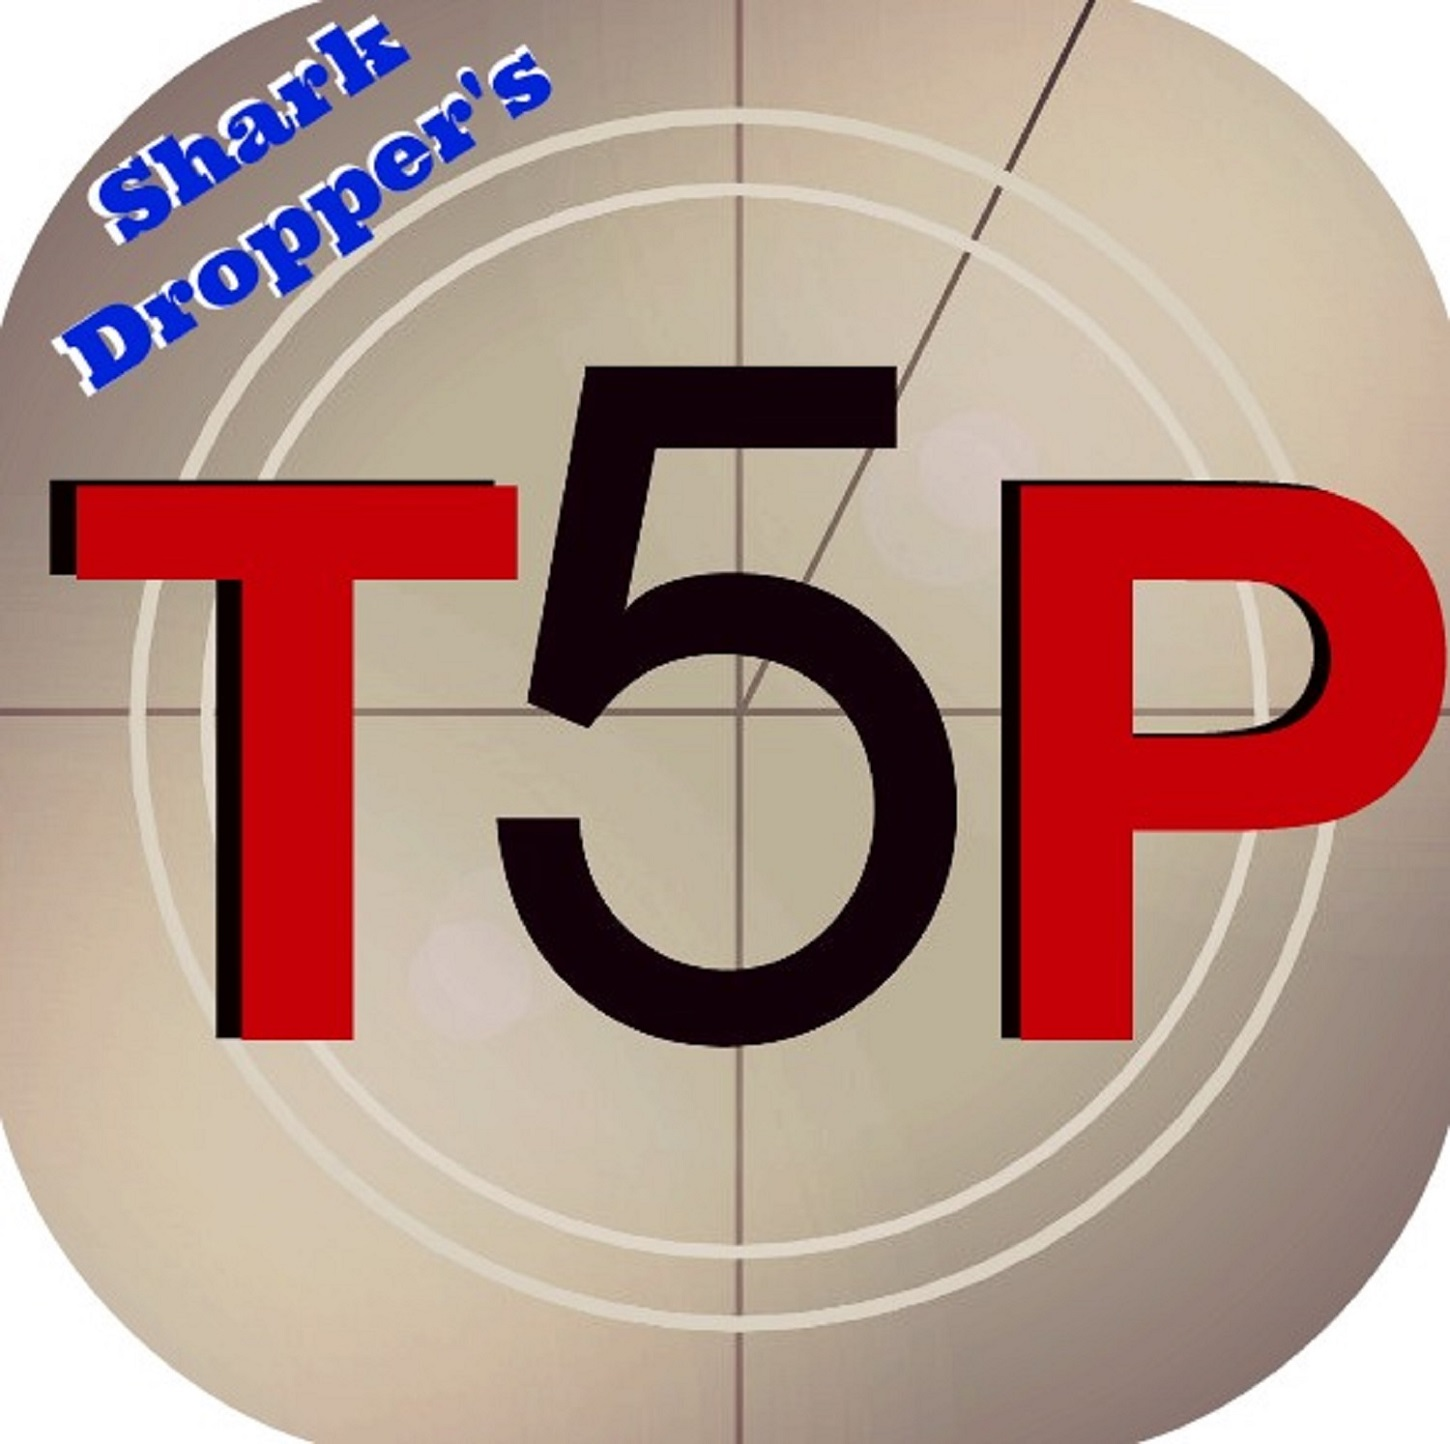 Top Five - Shark Dropper